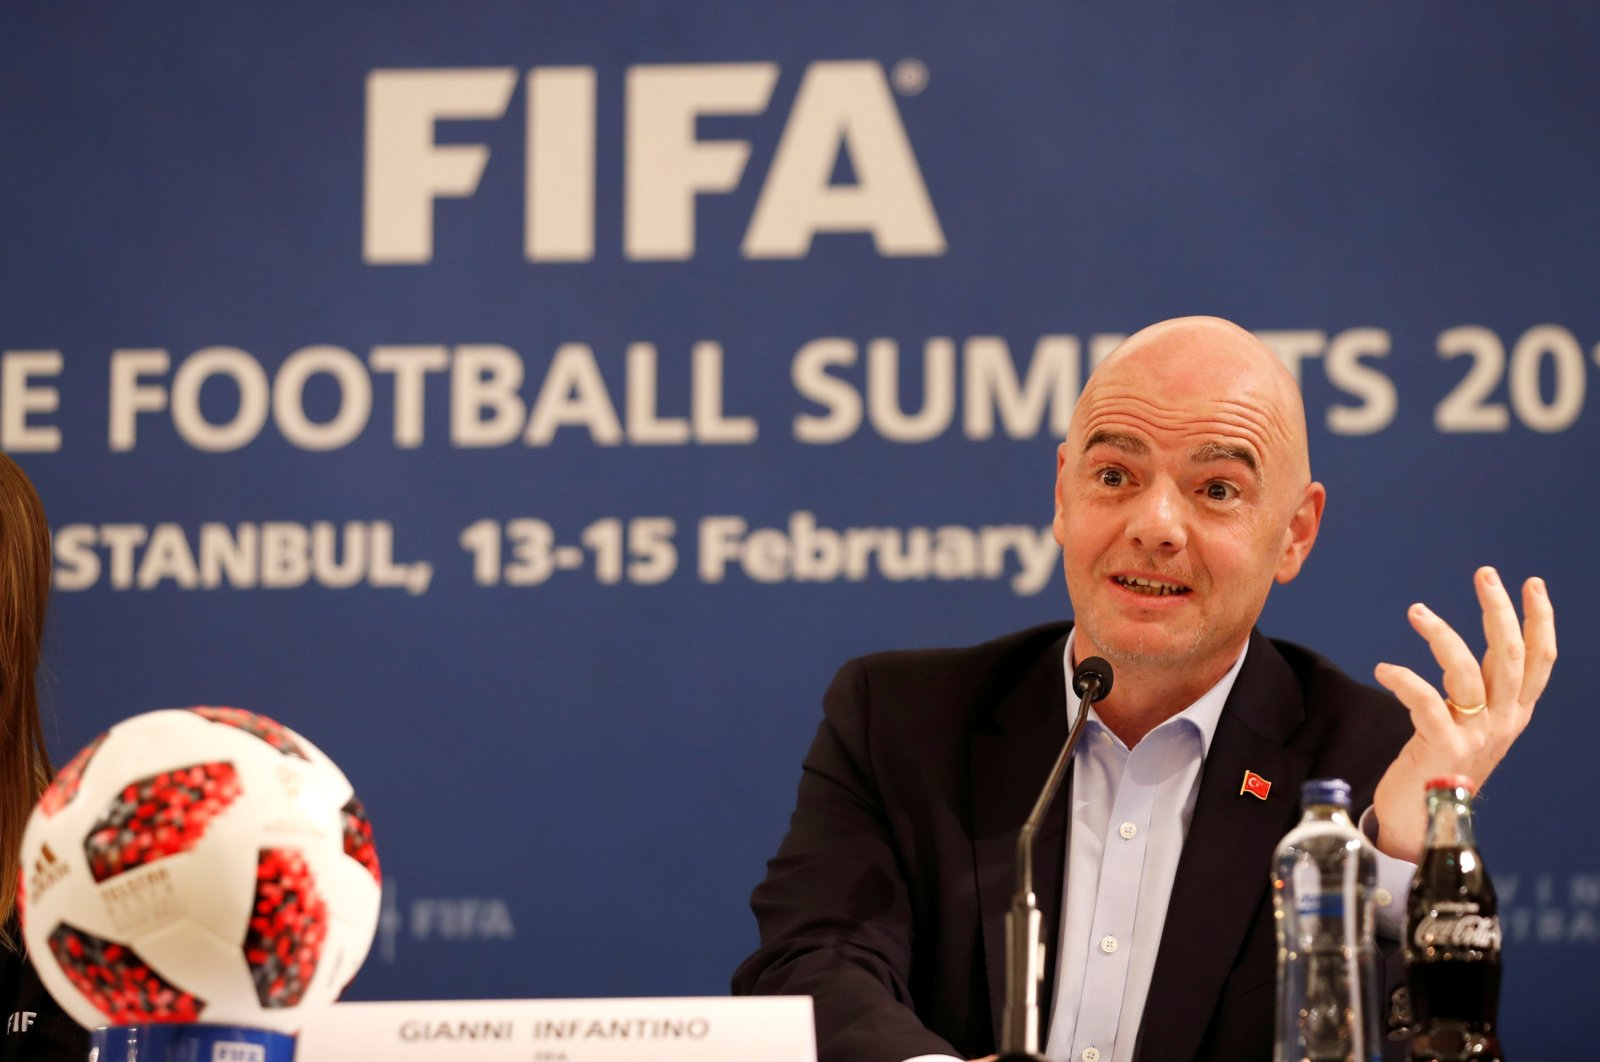 FIFA President Gianni Infantino speaking during a media briefing in Istanbul, Turkey, Feb. 15, 2019. (Reuters Photo)